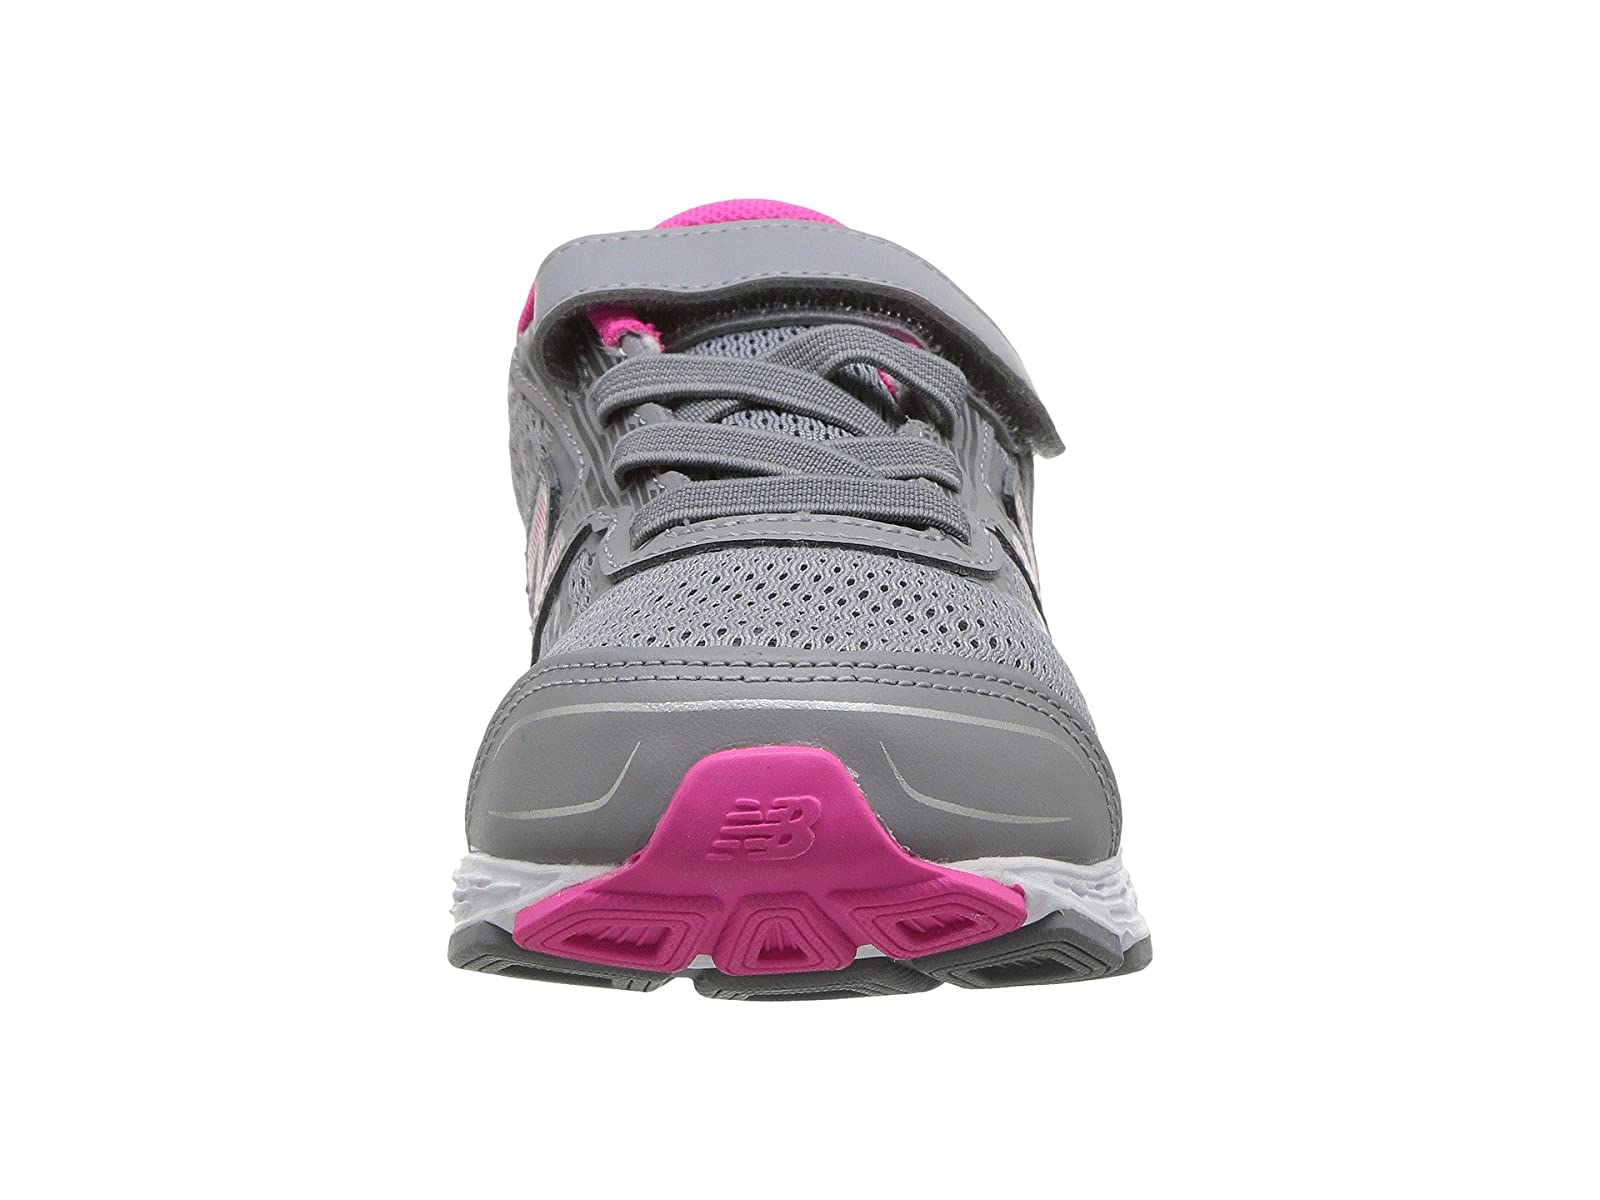 Girls-039-s-Shoes-New-Balance-Kids-KA680v5Y-Little-Kid-Big-Kid thumbnail 8